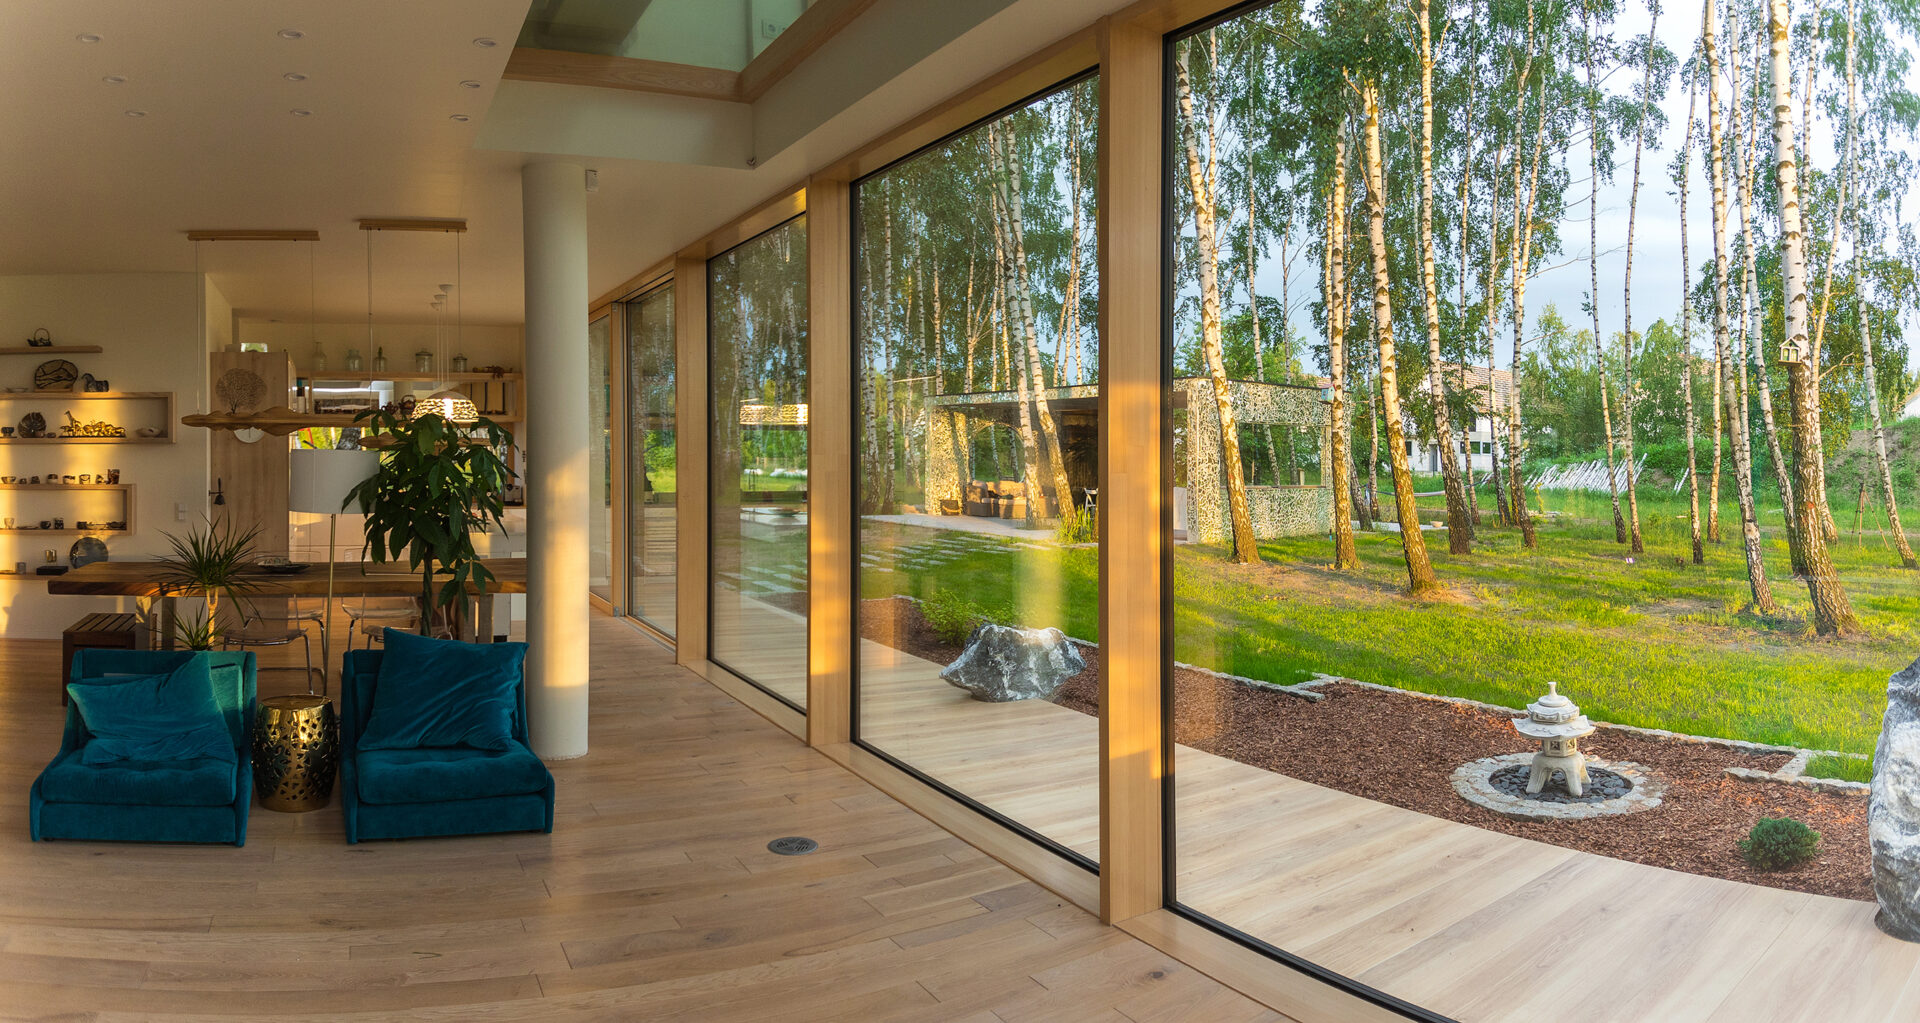 The back of this house features Pinus' Total Glass sliding door and windows